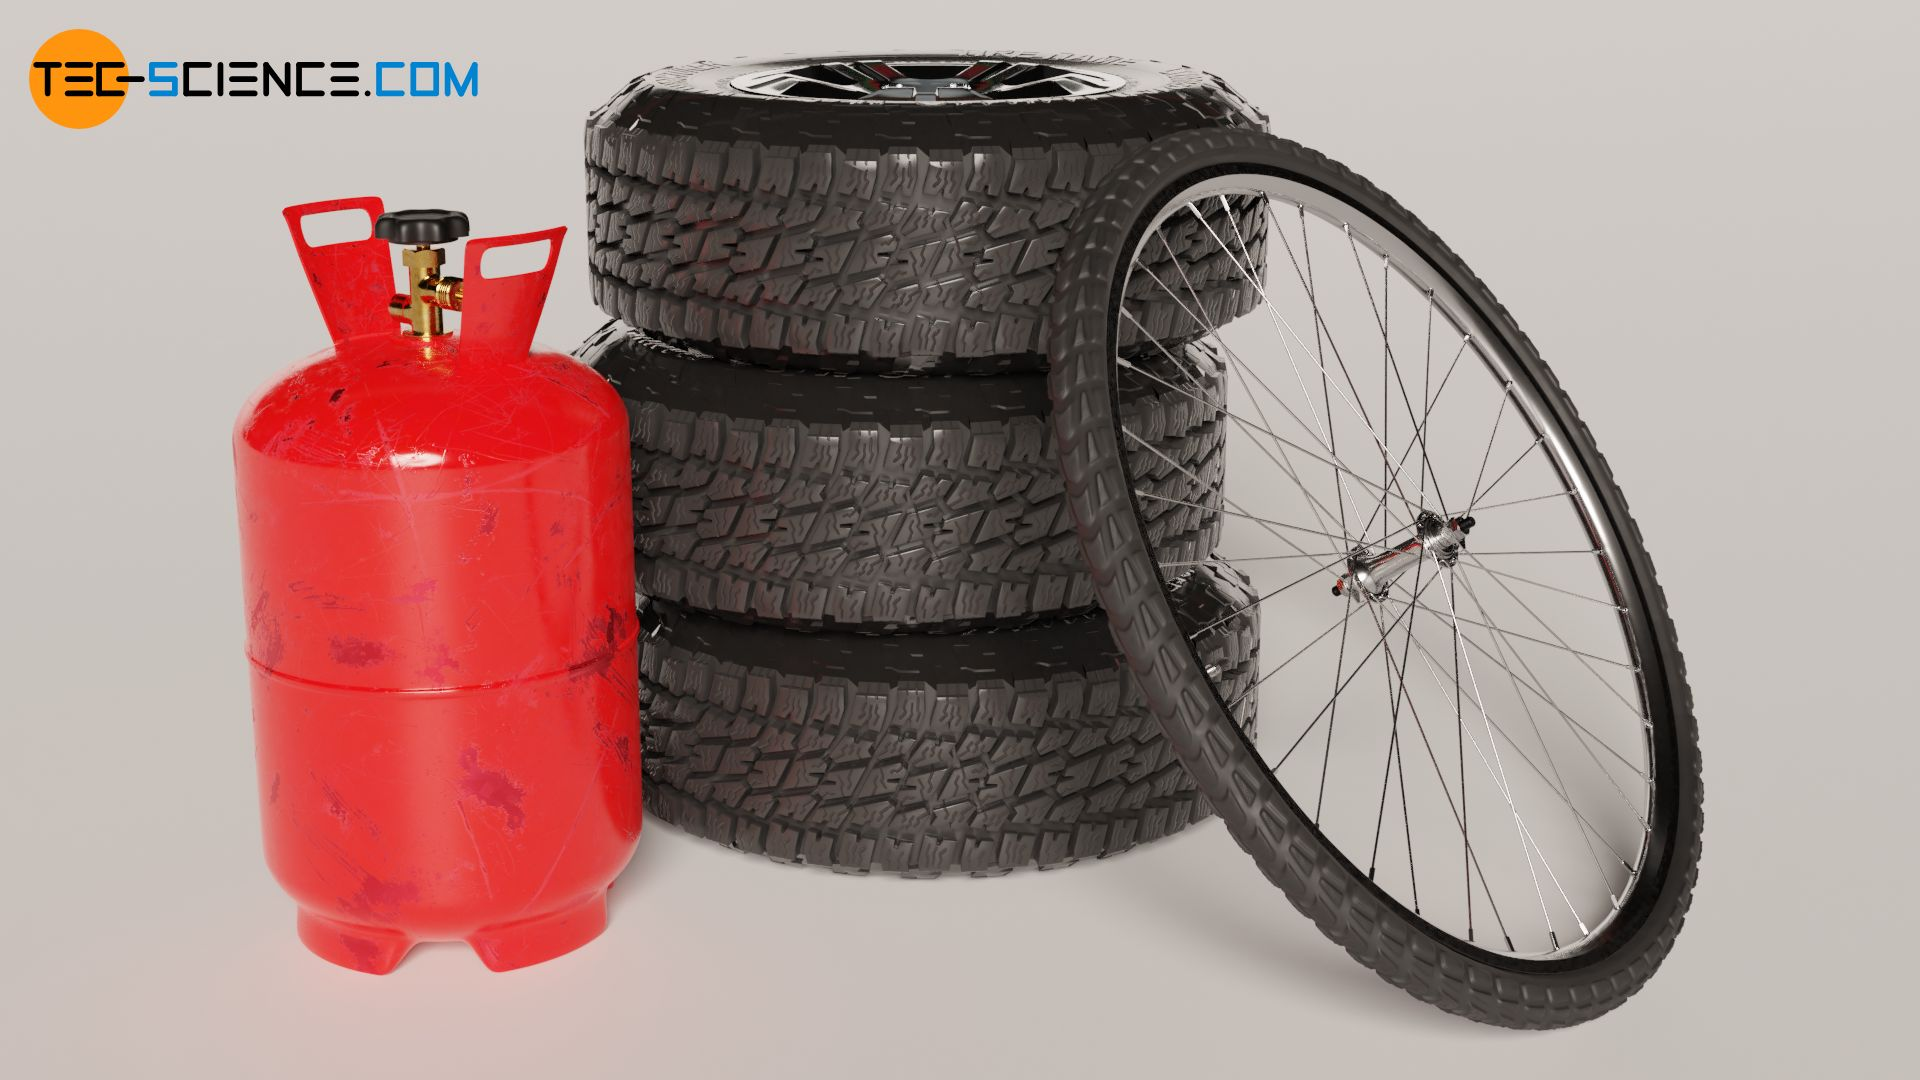 Gas bottle, car tire and bicycle tire as examples for isochoric processes